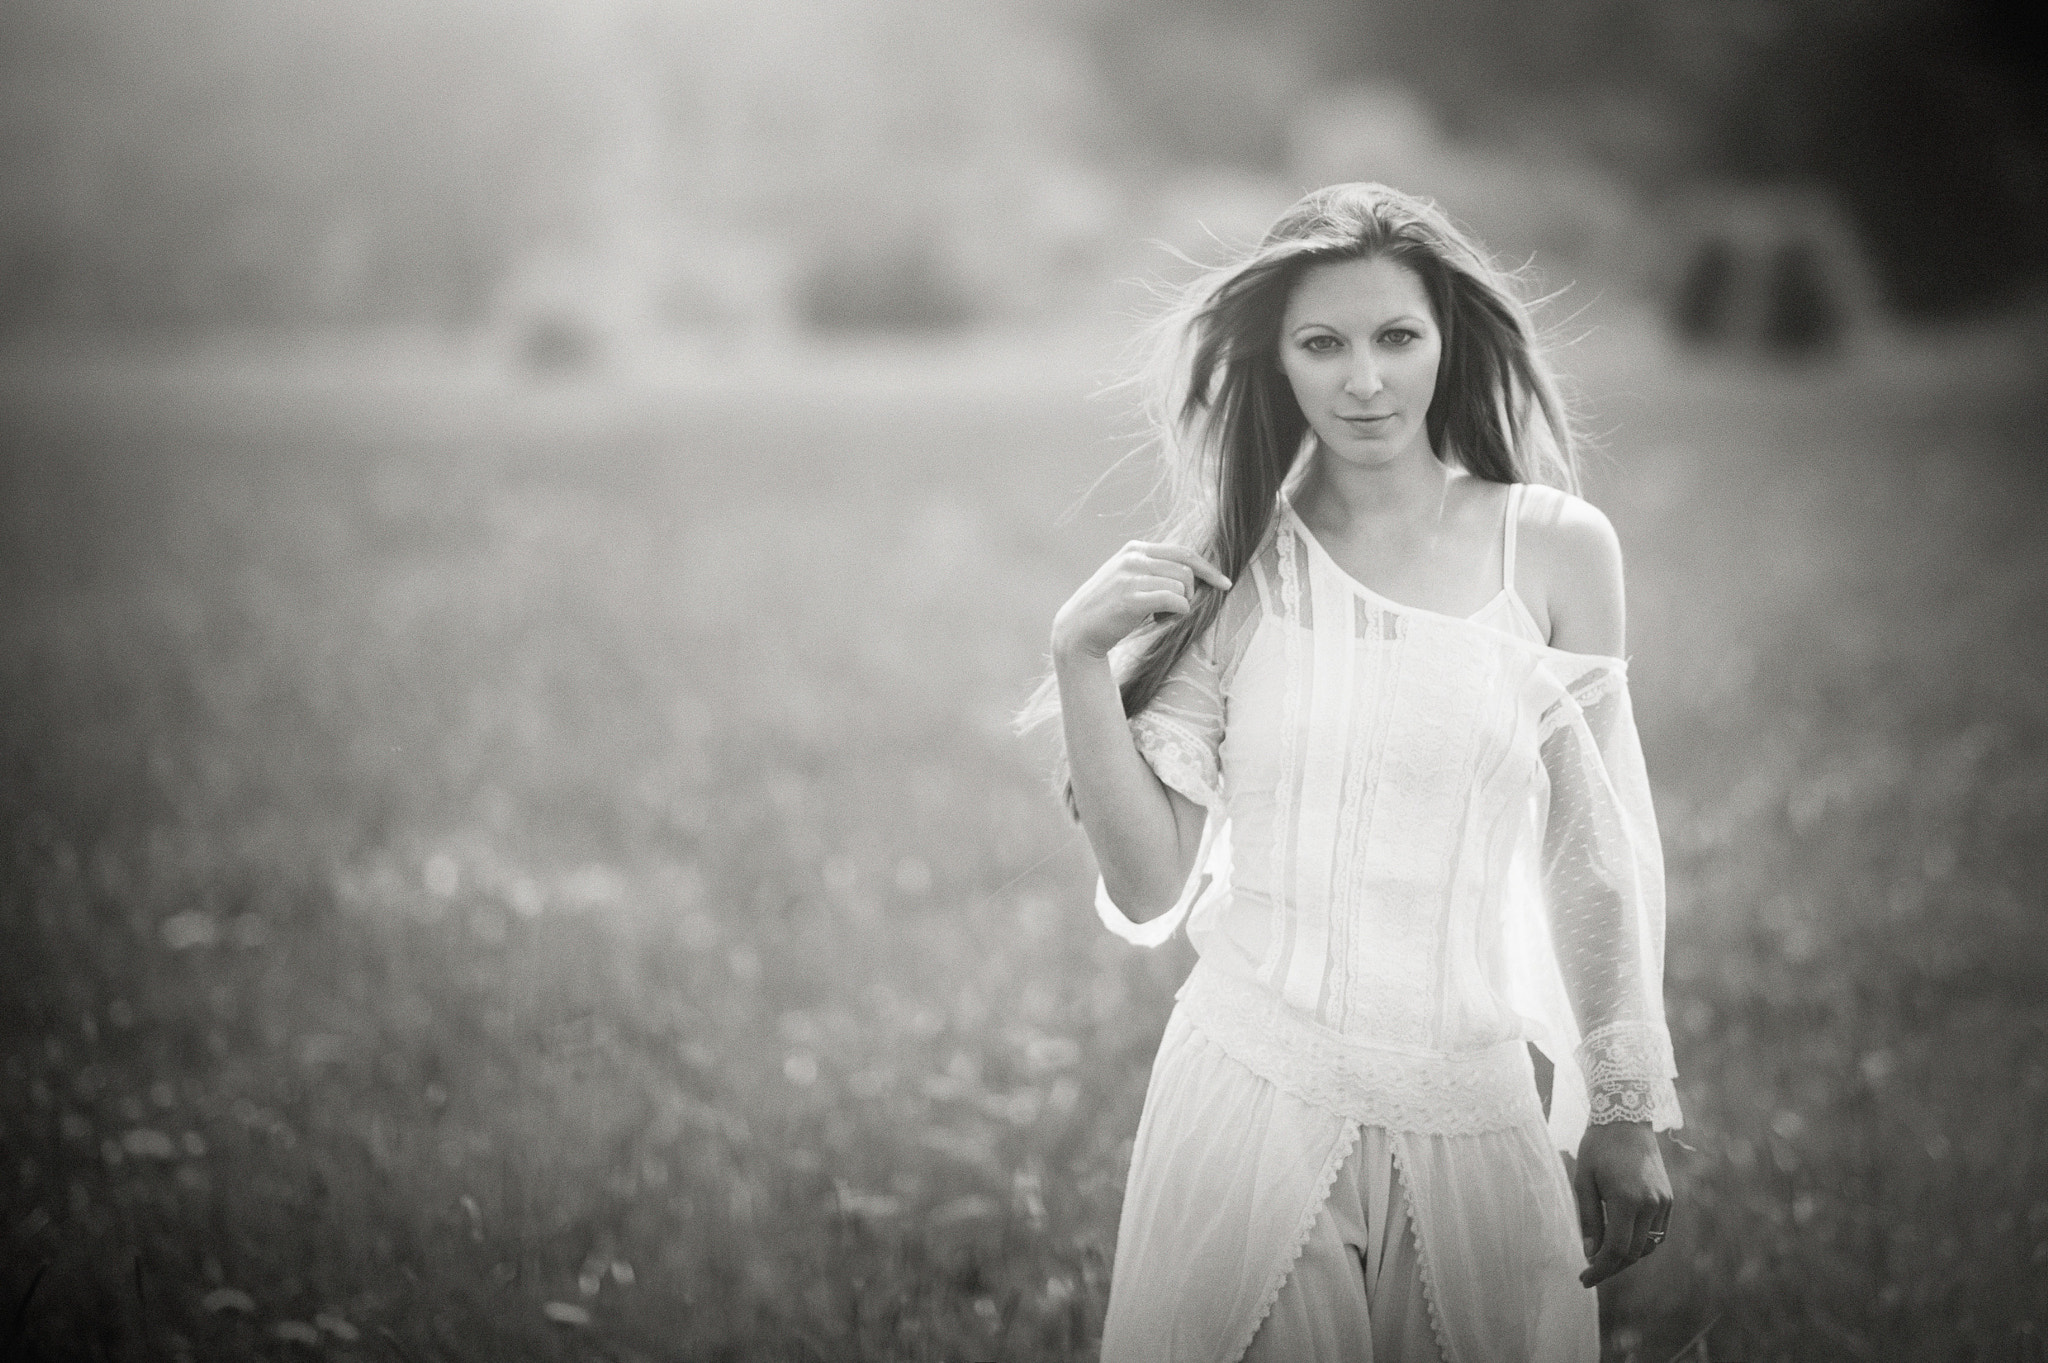 Photograph on a way home by Florian Weiler on 500px